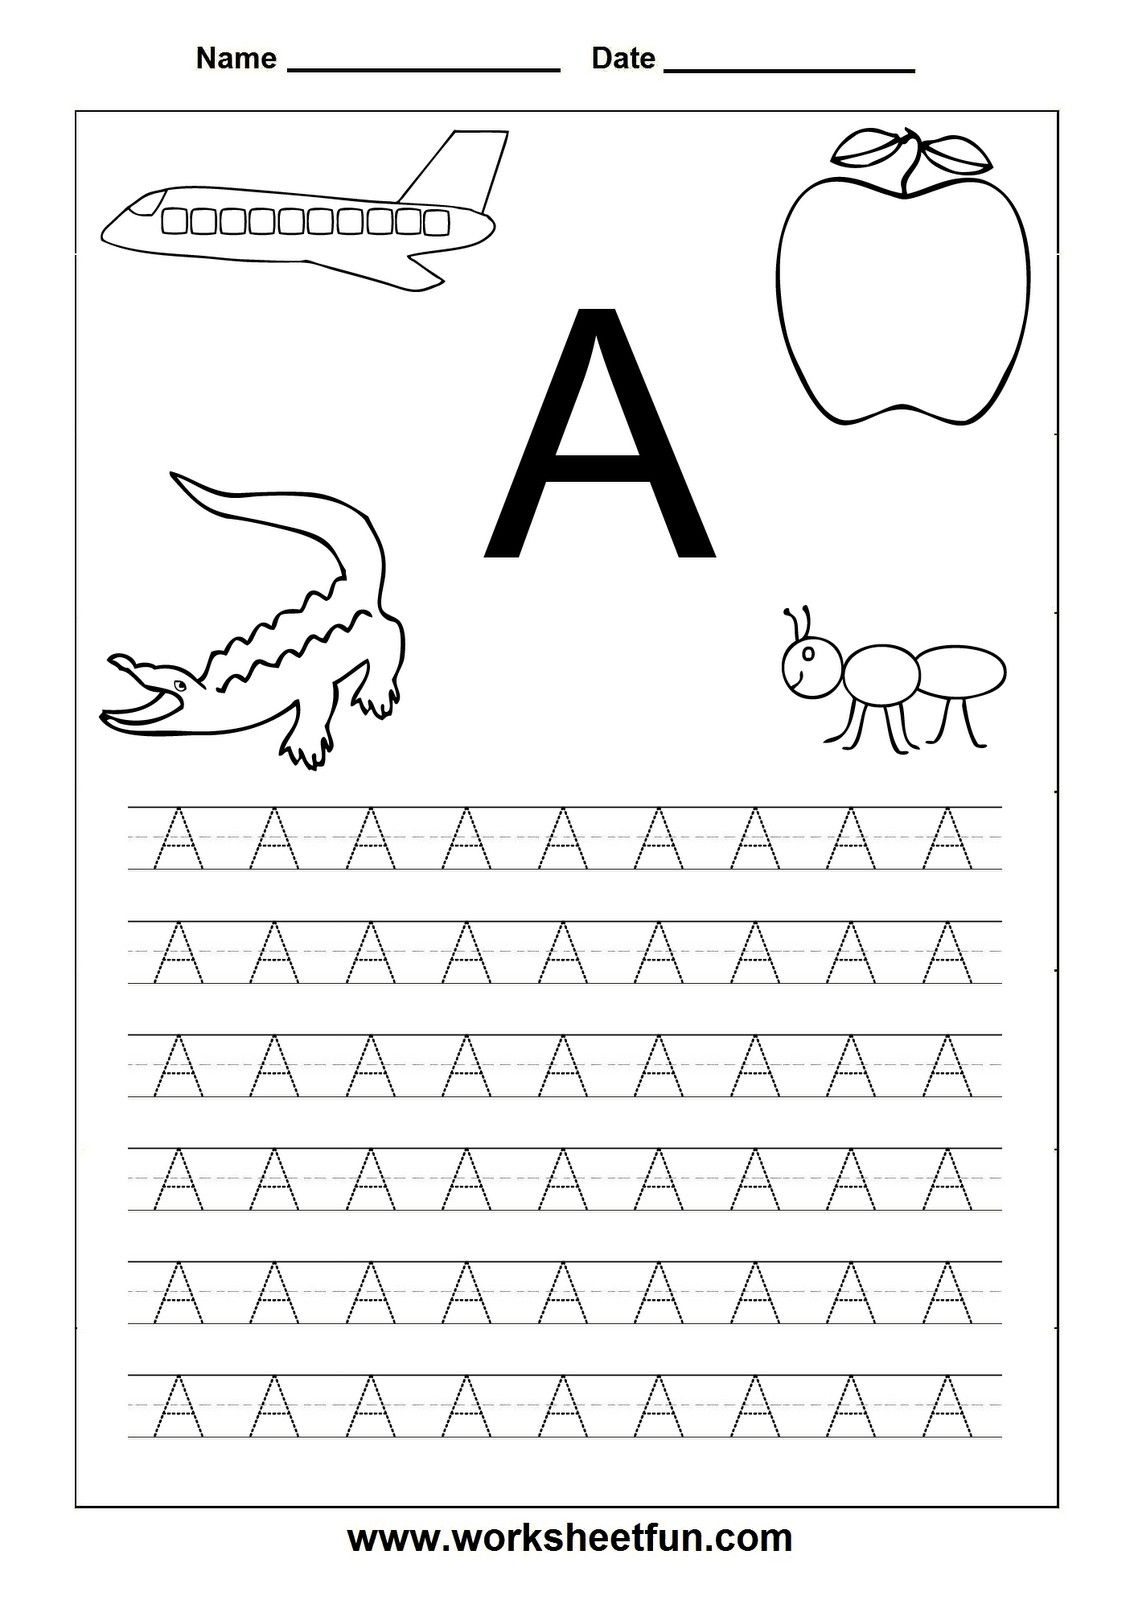 Printable Letters For Preschoolers - Paul's House | Alphabet pertaining to Alphabet A Worksheets Free